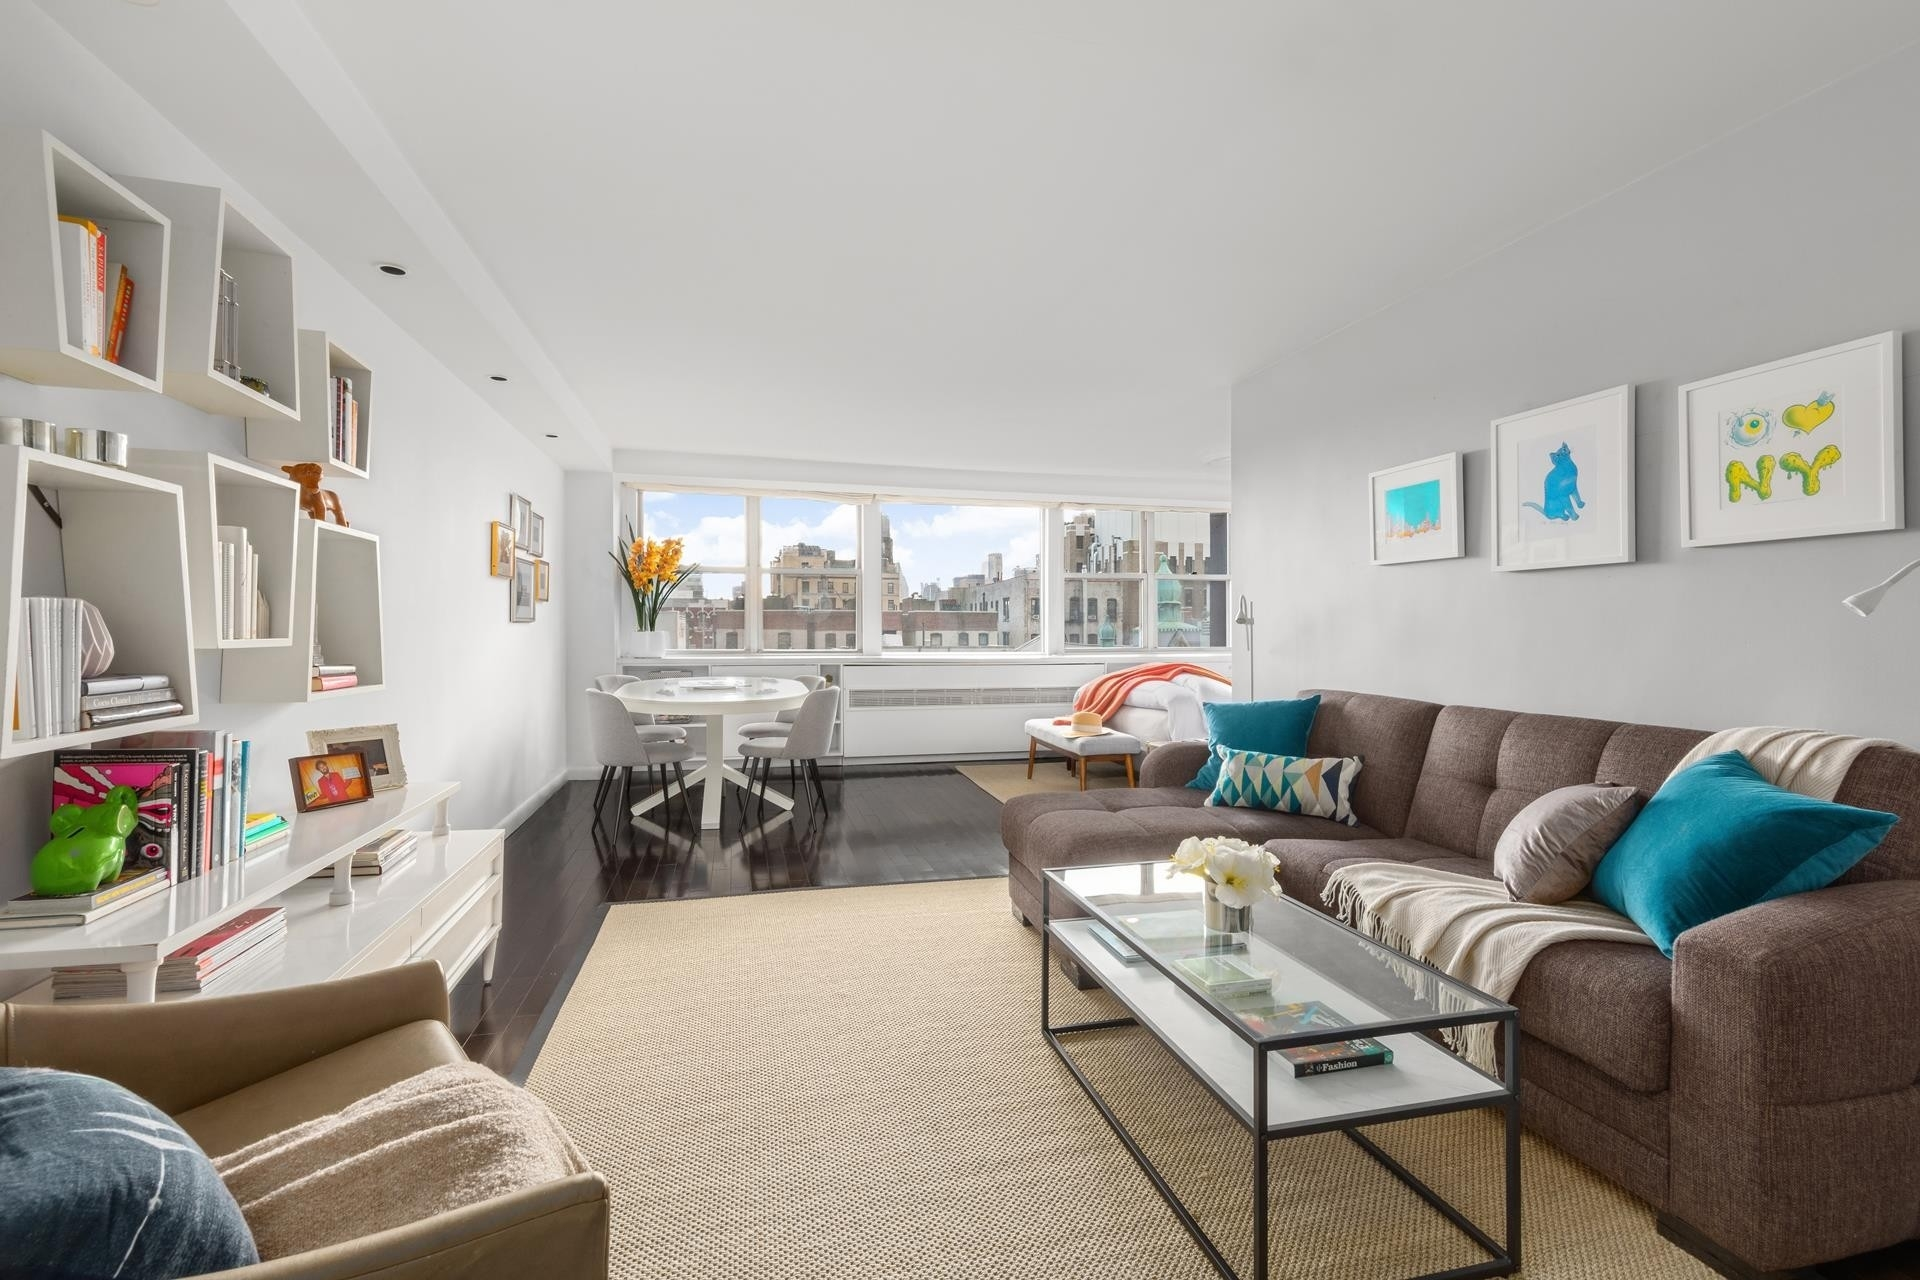 Co-op Properties for Sale at 333 East 14th St, 7F Gramercy Park, New York, NY 10003